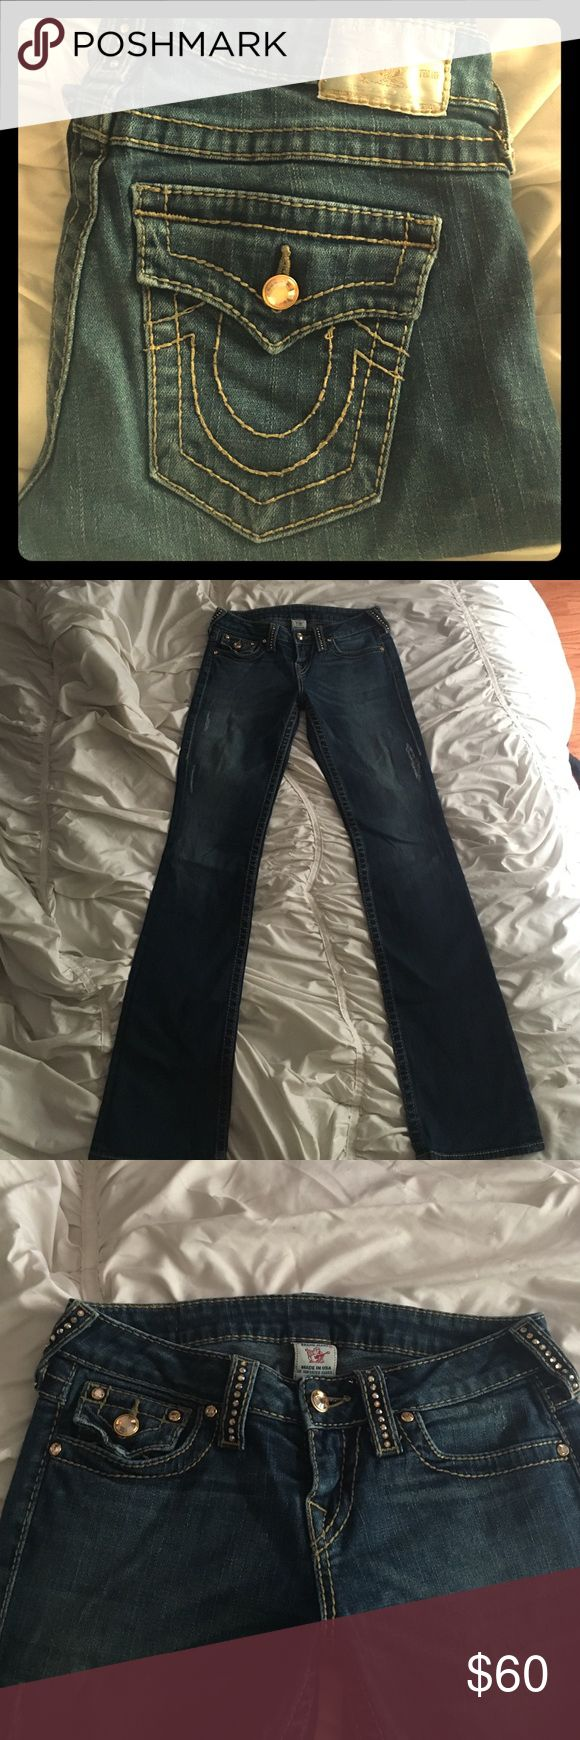 True Religion Disco Becky Jeans True religion jeans with real gold Swarovski crystals. Bottoms are worn from dragging on the ground as seen in the last picture. There's also a patch on the inside on the left leg where one of the distress marks opened into a hole. True Religion Jeans